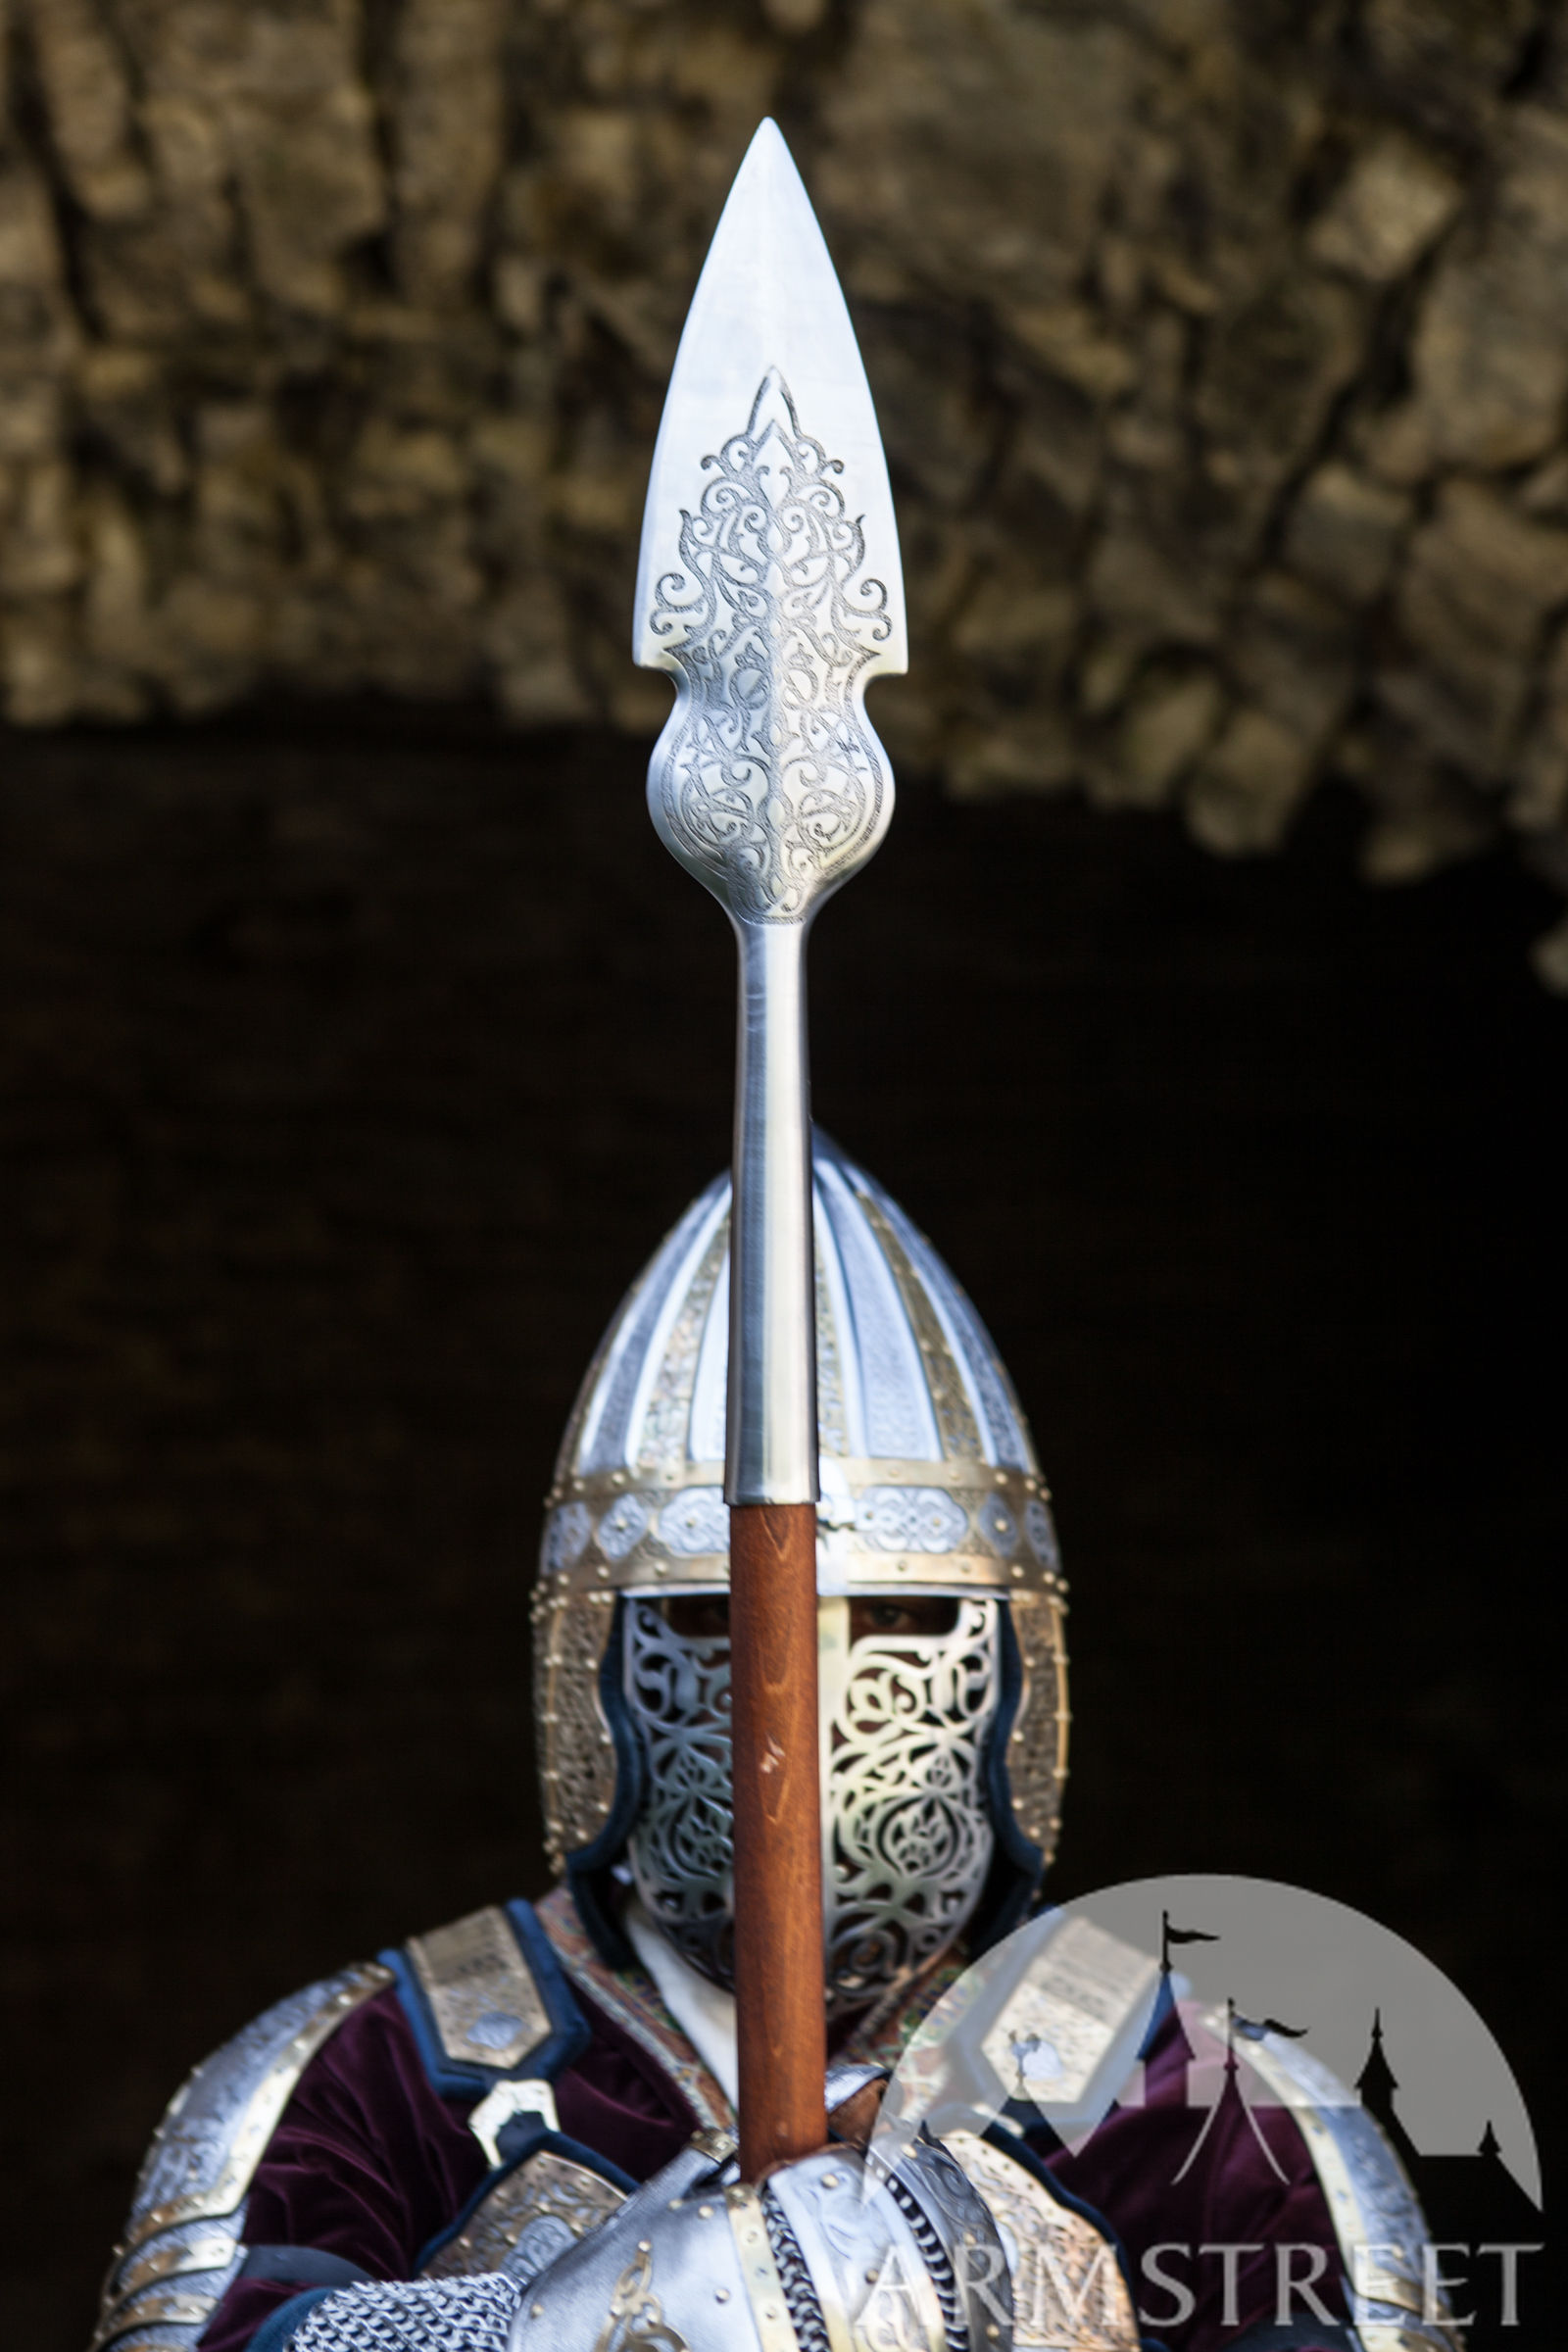 Stainless Spearhead King of the East Available in